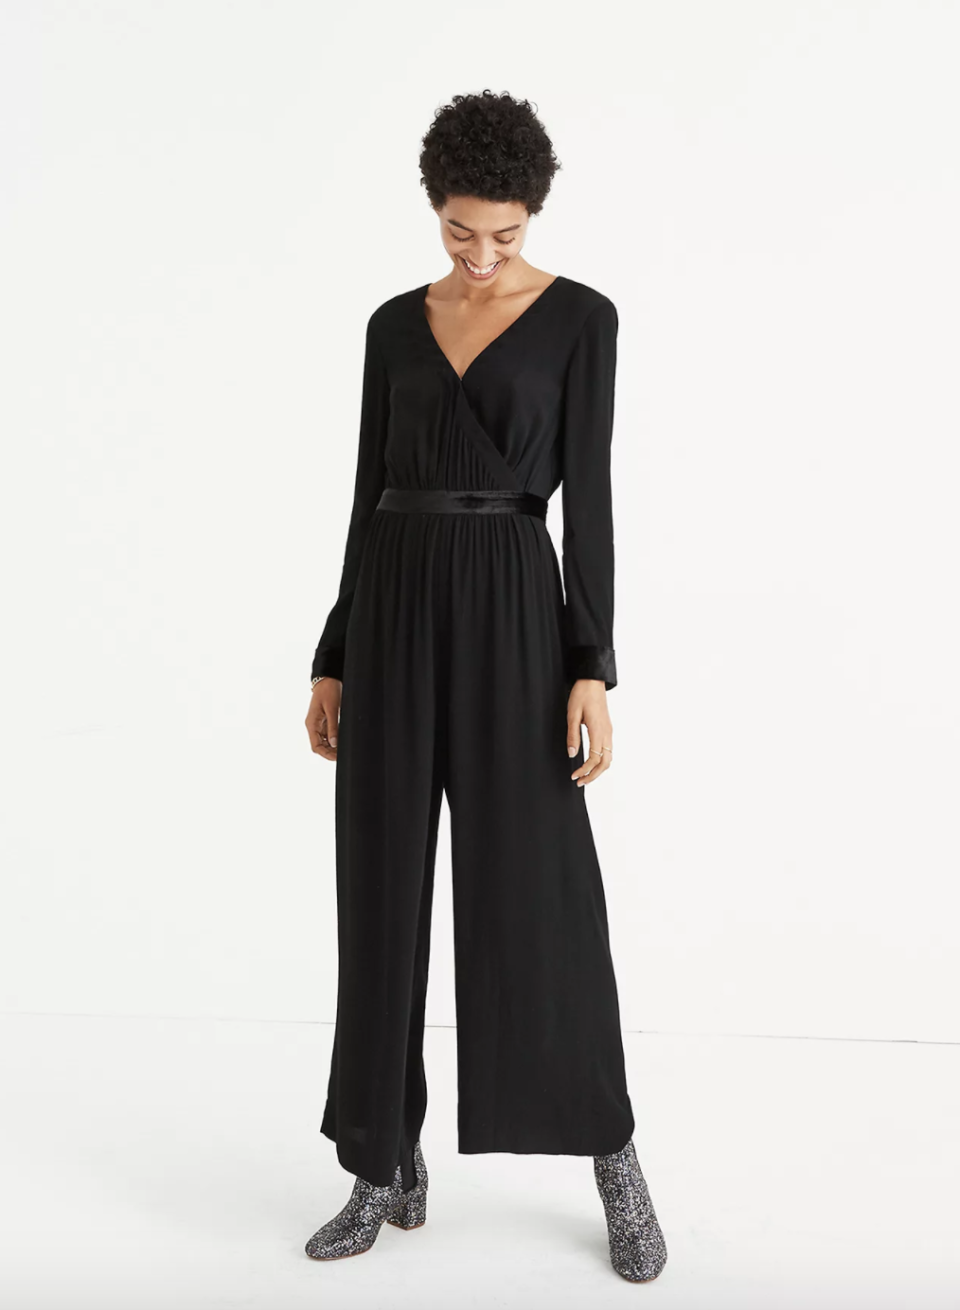 """<p><strong>Madewell</strong></p><p>madewell.com</p><p><strong>$64.99</strong></p><p><a href=""""https://go.redirectingat.com?id=74968X1596630&url=https%3A%2F%2Fwww.madewell.com%2Fvelvet-trimmed-tie-jumpsuit-H2098.html&sref=https%3A%2F%2Fwww.goodhousekeeping.com%2Fbeauty%2Ffashion%2Fg25400387%2Fnew-years-eve-outfits%2F"""" rel=""""nofollow noopener"""" target=""""_blank"""" data-ylk=""""slk:Shop Now"""" class=""""link rapid-noclick-resp"""">Shop Now</a></p><p>For a hint of velvet, go with this jumpsuit that's just trimmed with the festive material. </p>"""